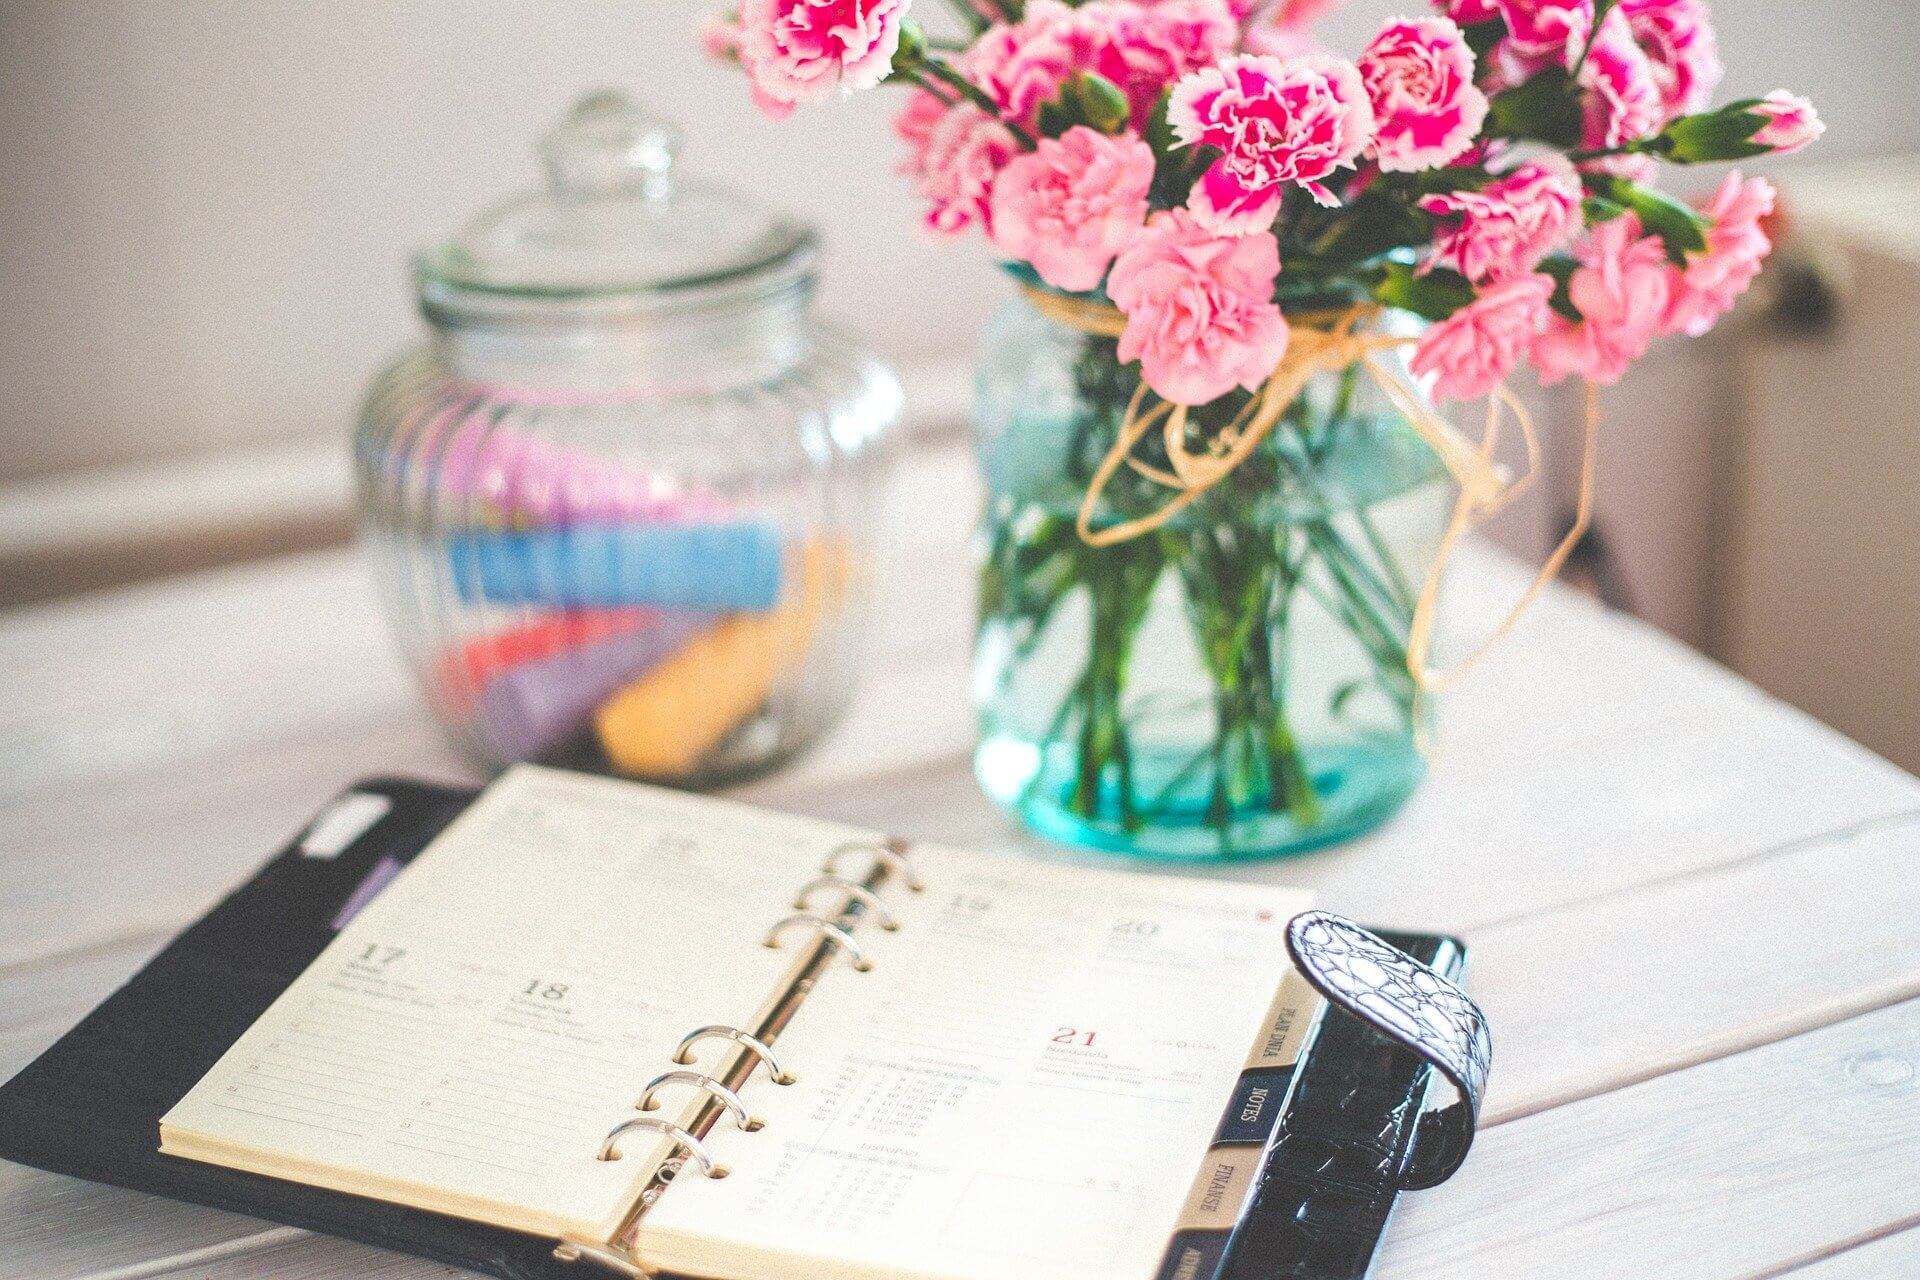 A planner sits open on a desk beside some flowers